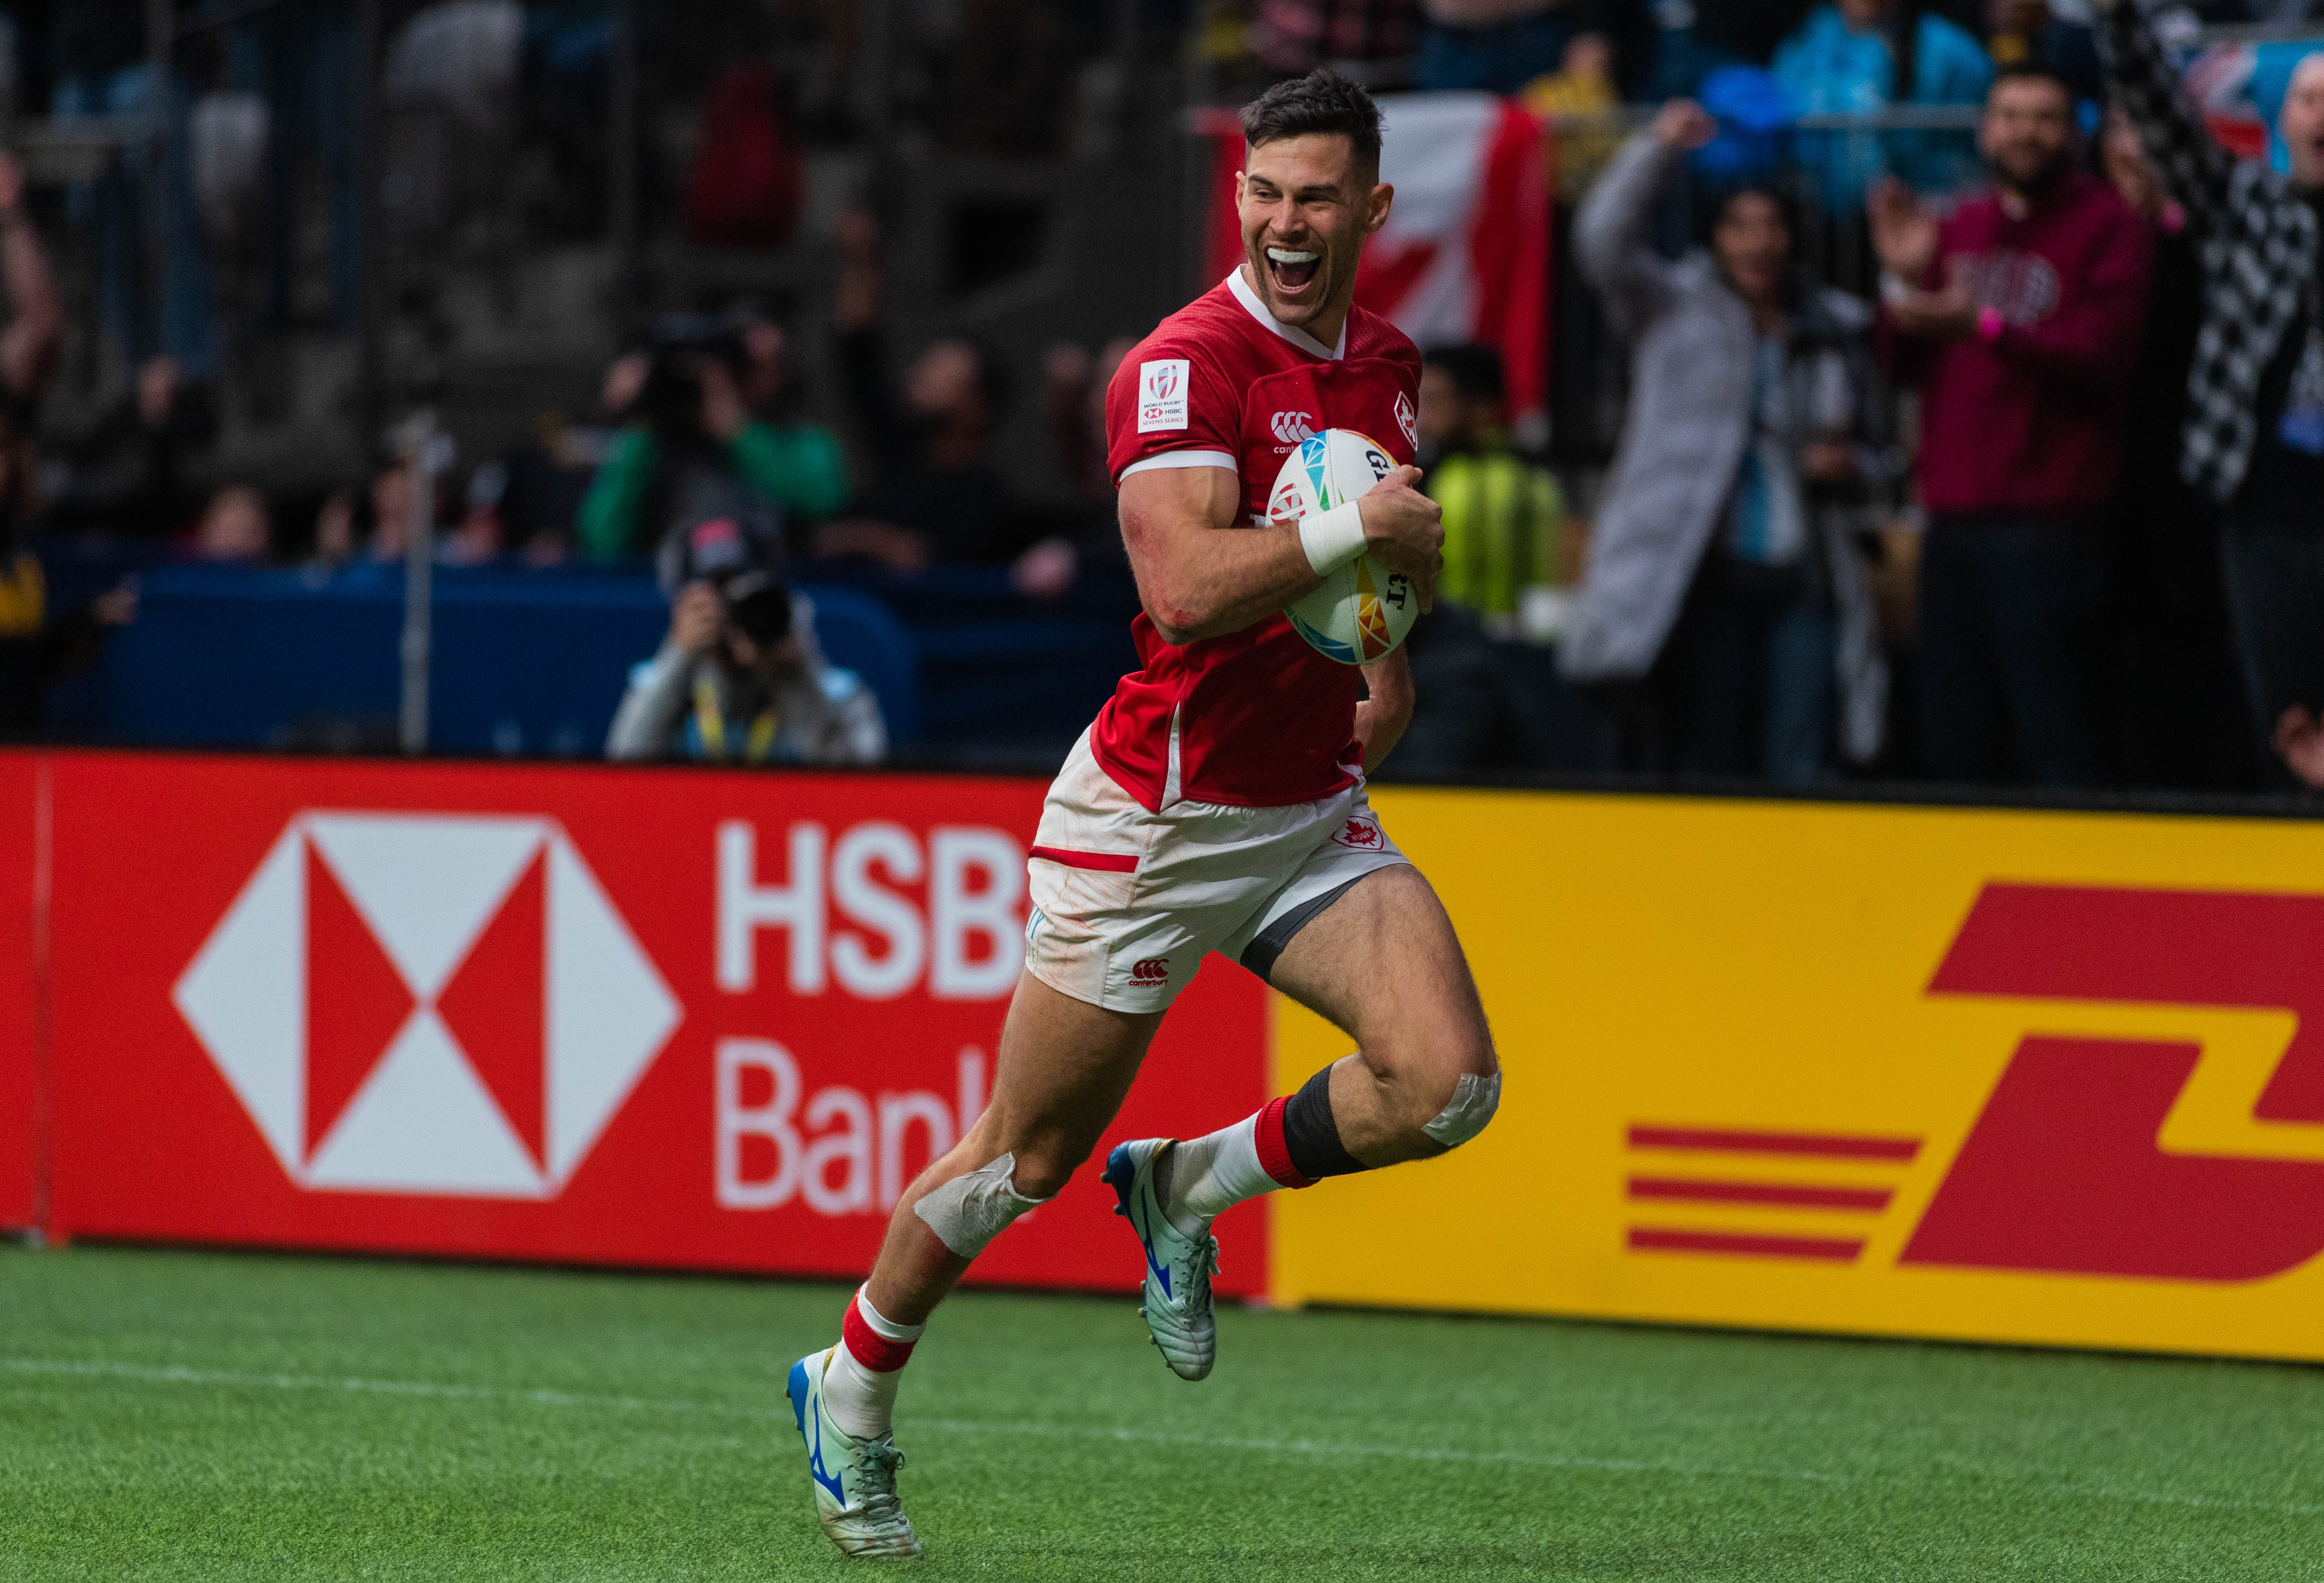 It was all smiles en route to another try for Canada.